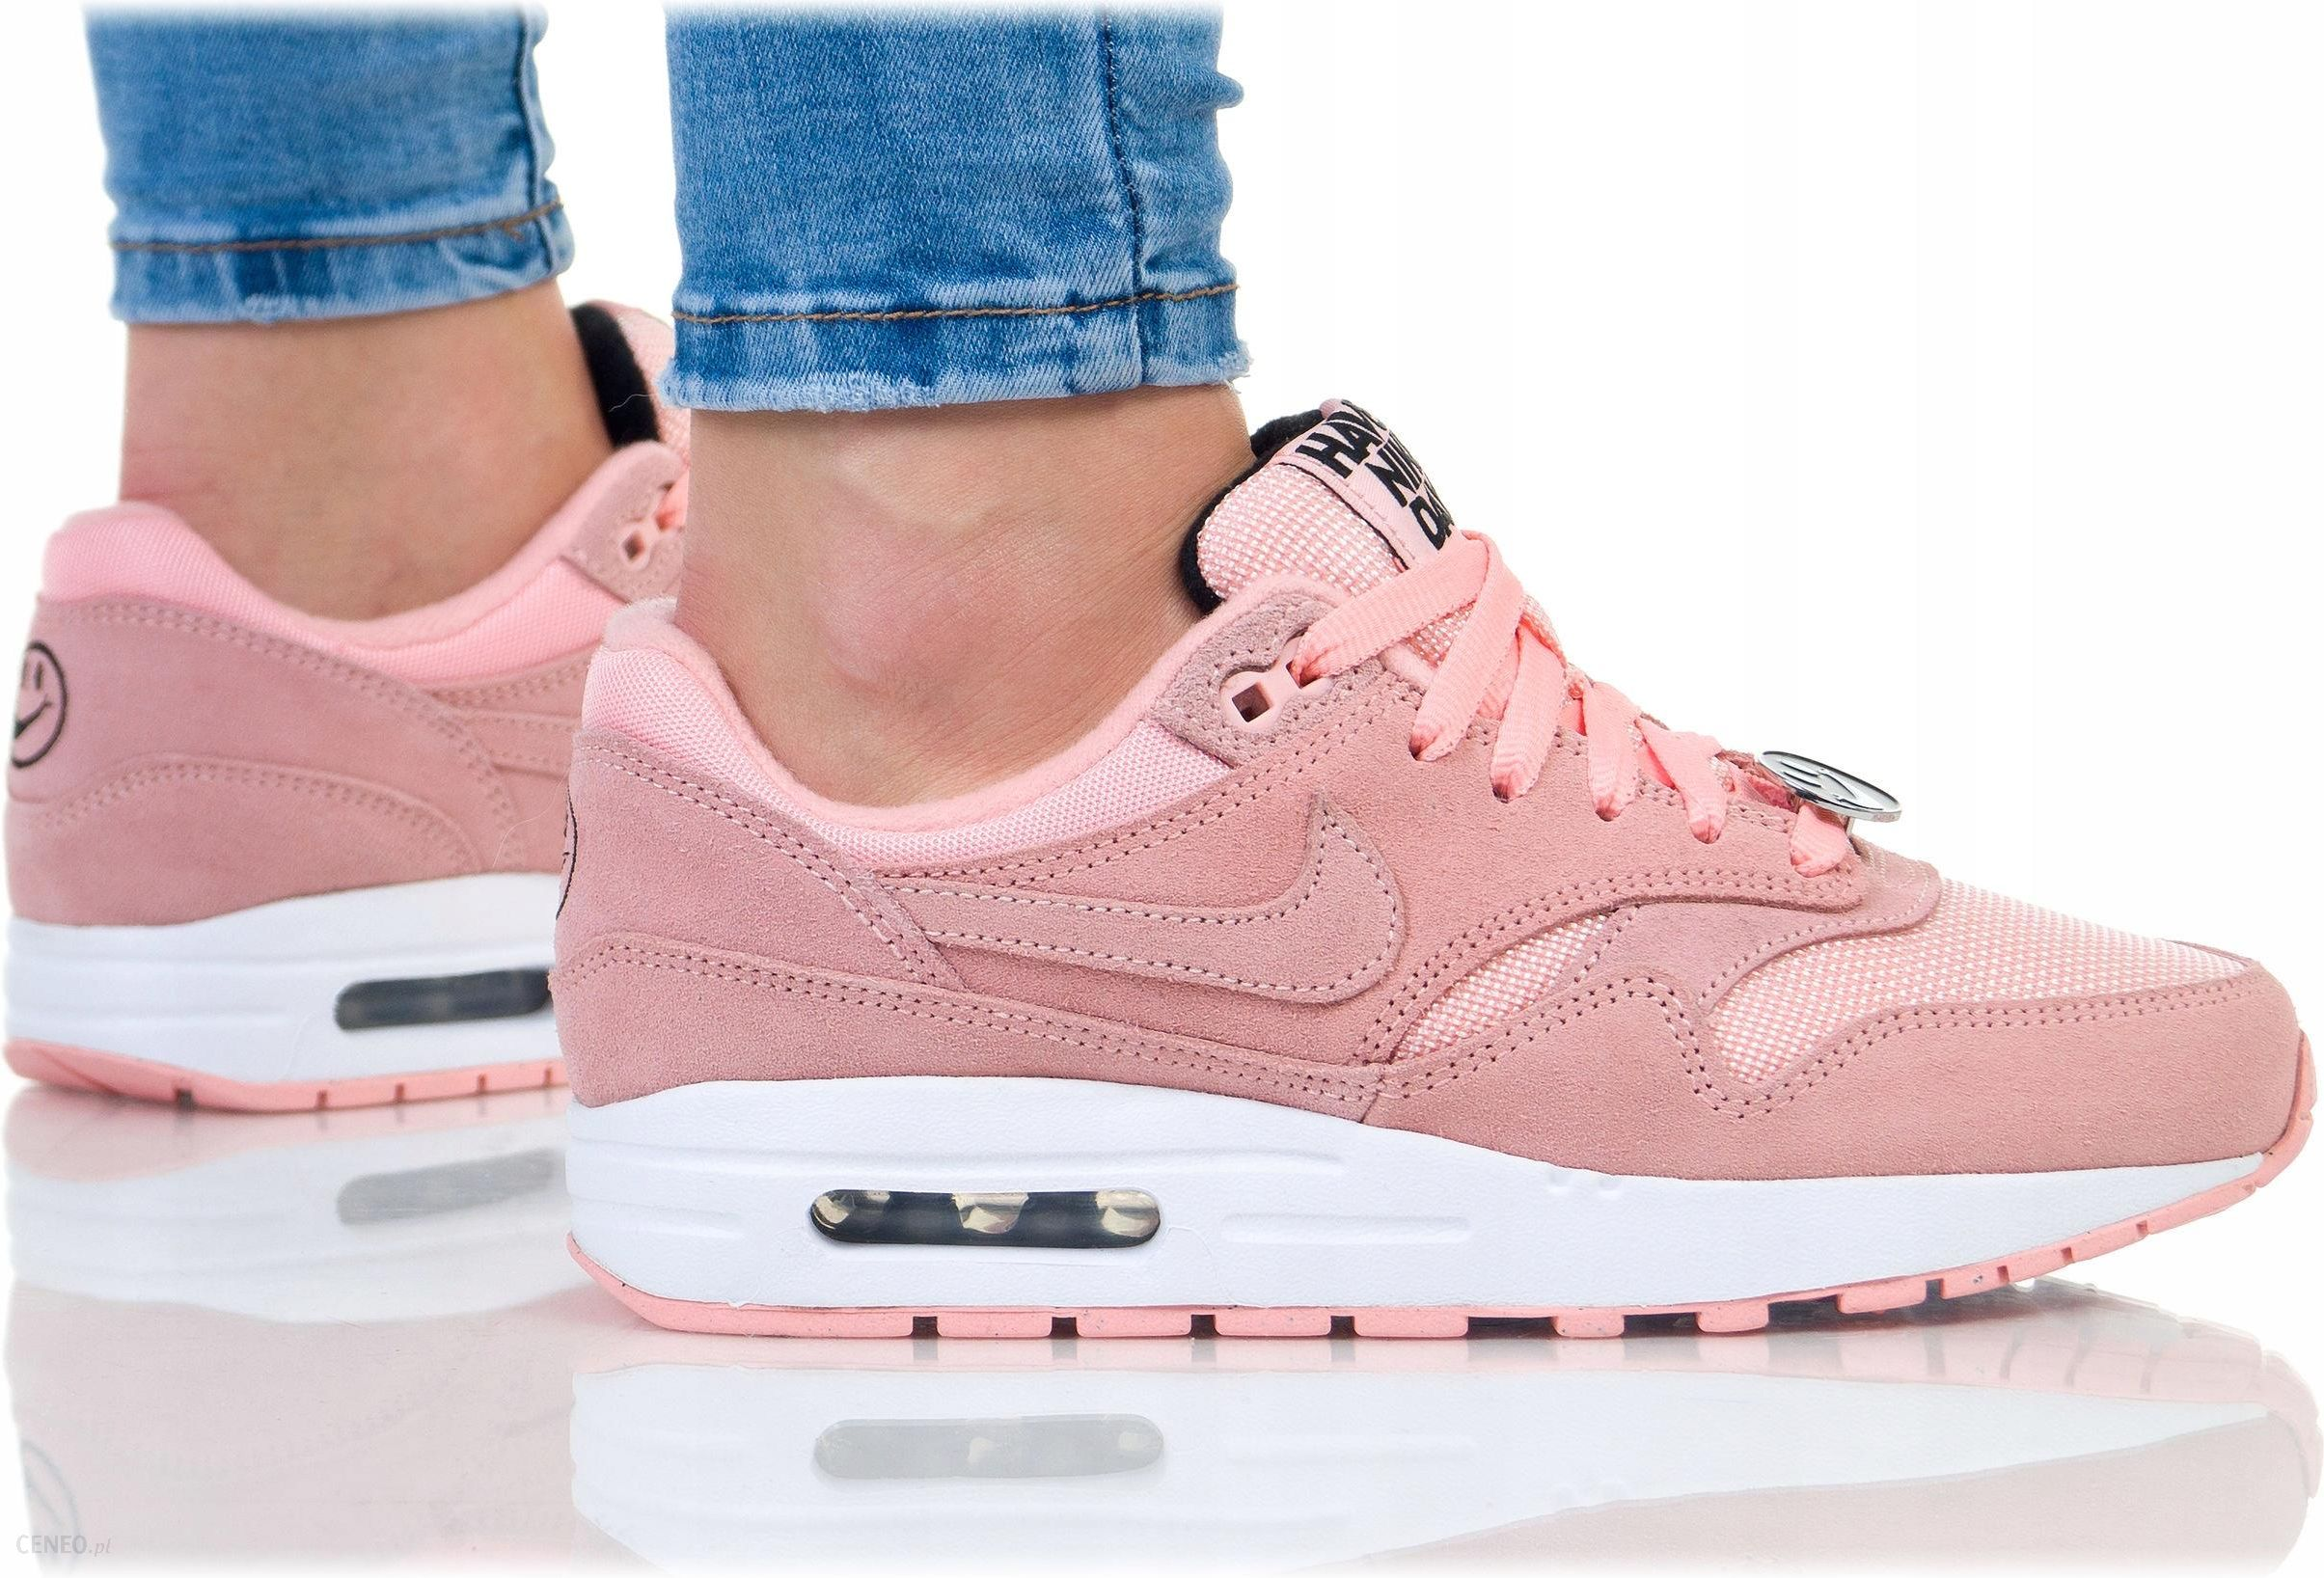 Nike Air Max 1 Nk Day GS AT8131 600 Ceny i opinie Ceneo.pl